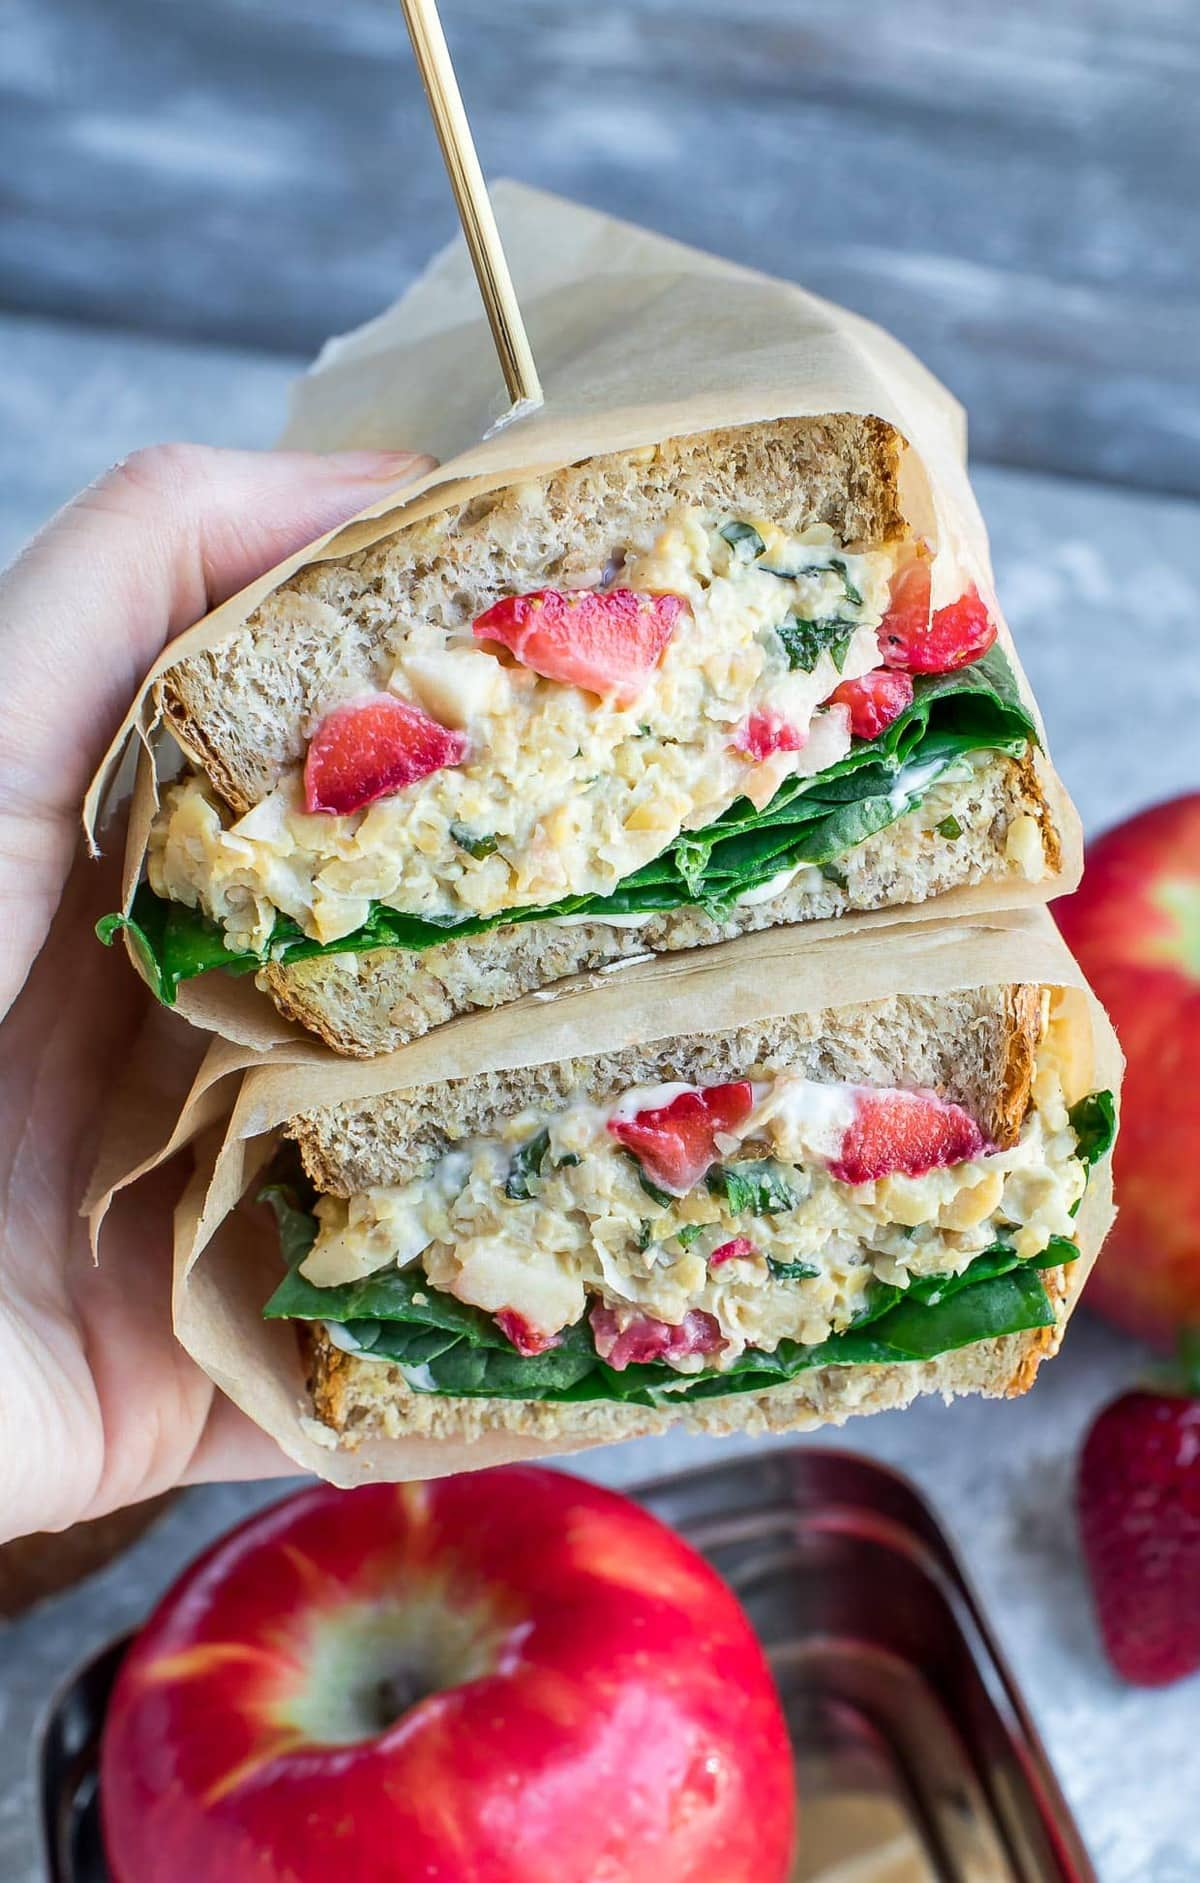 Strawberry Basil Chickpea Salad Sandwhich